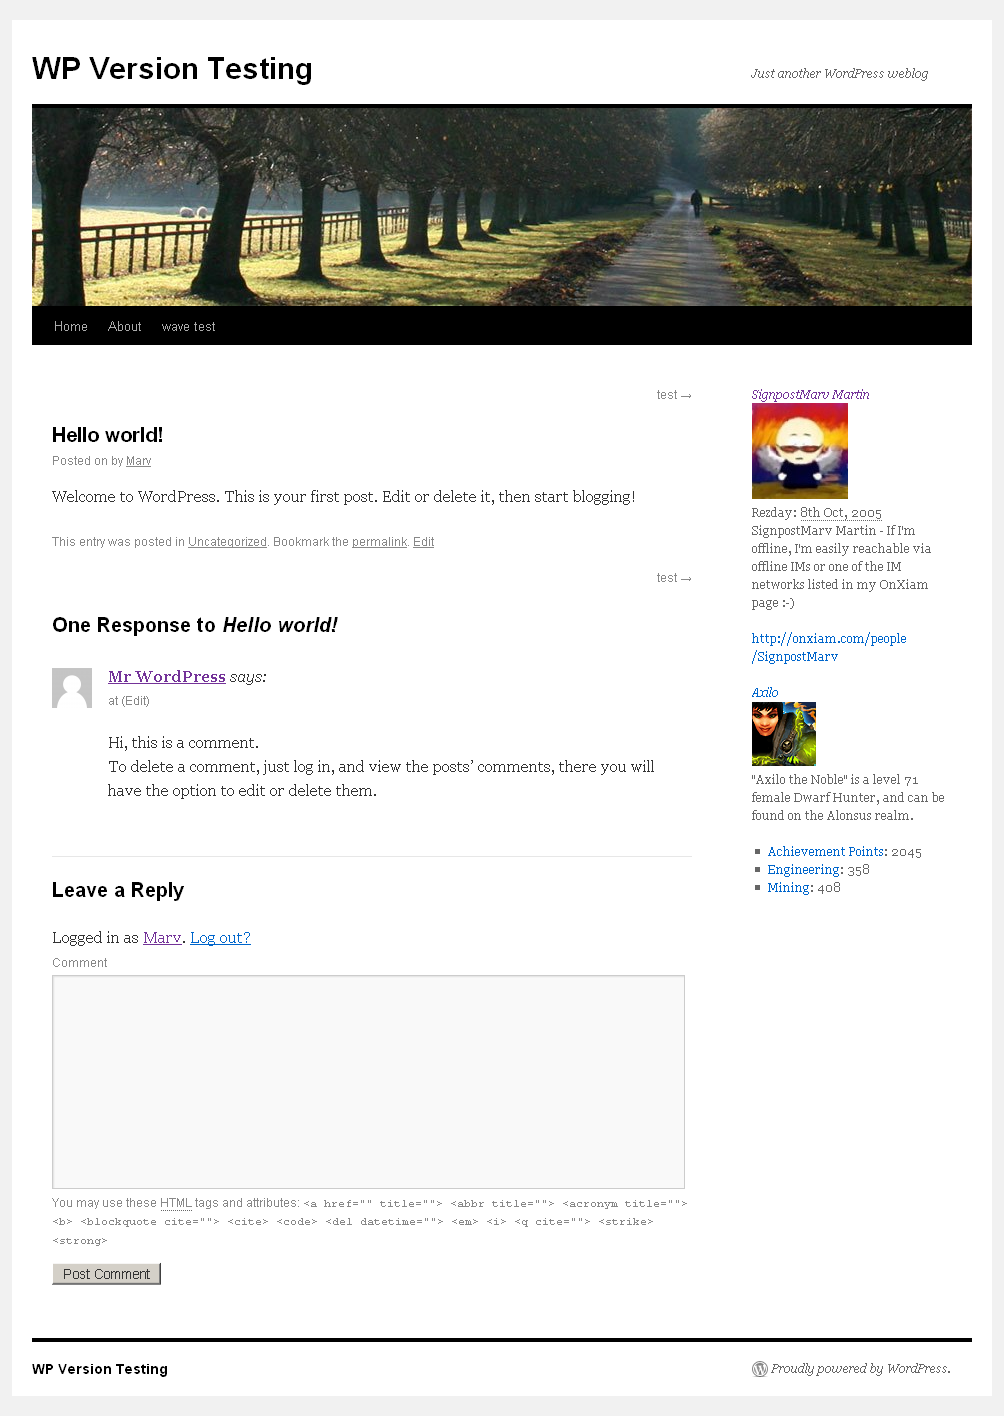 How the widgets look in the default WP theme.